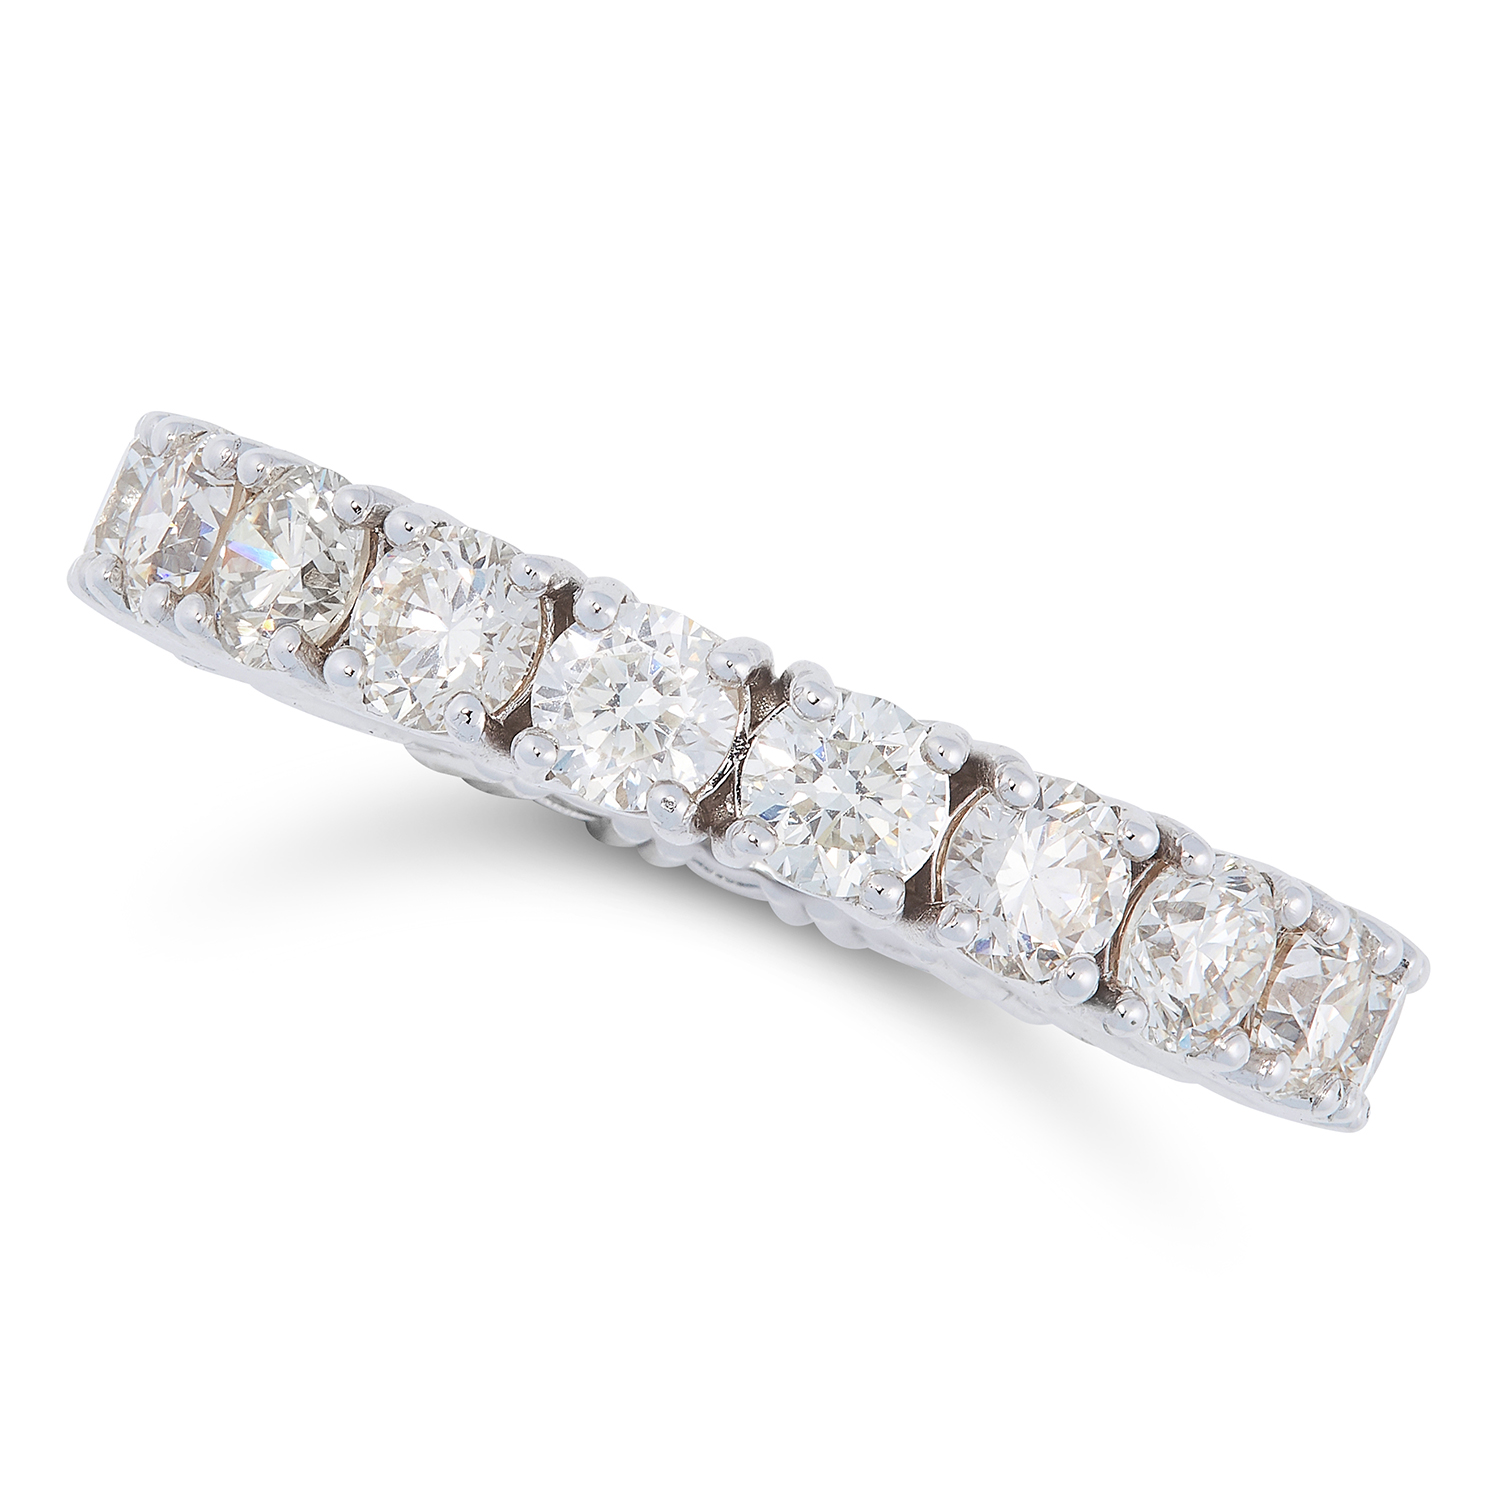 Lot 111 - A 3.18 CARAT DIAMOND ETERNITY RING designed as a full eternity ring set with 3.18 carats of round